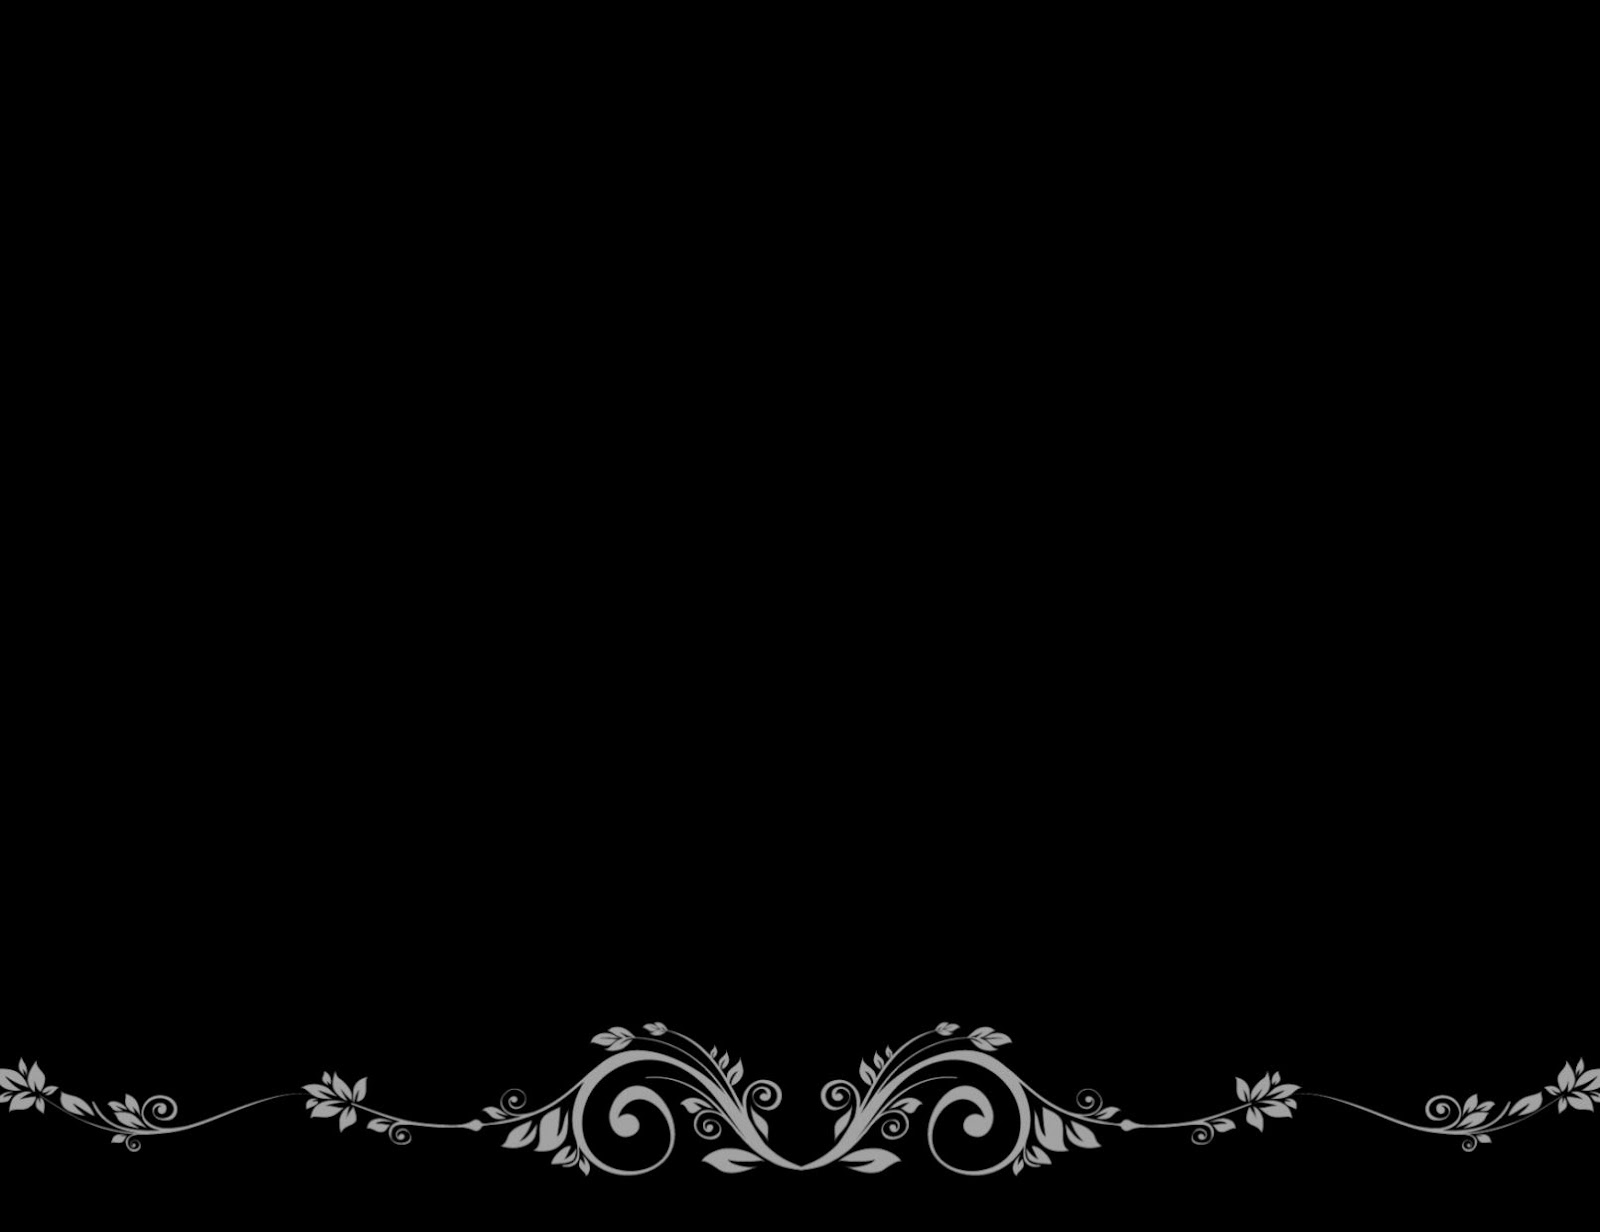 Plain Black Wallpaper Border Wallpapers Emoji